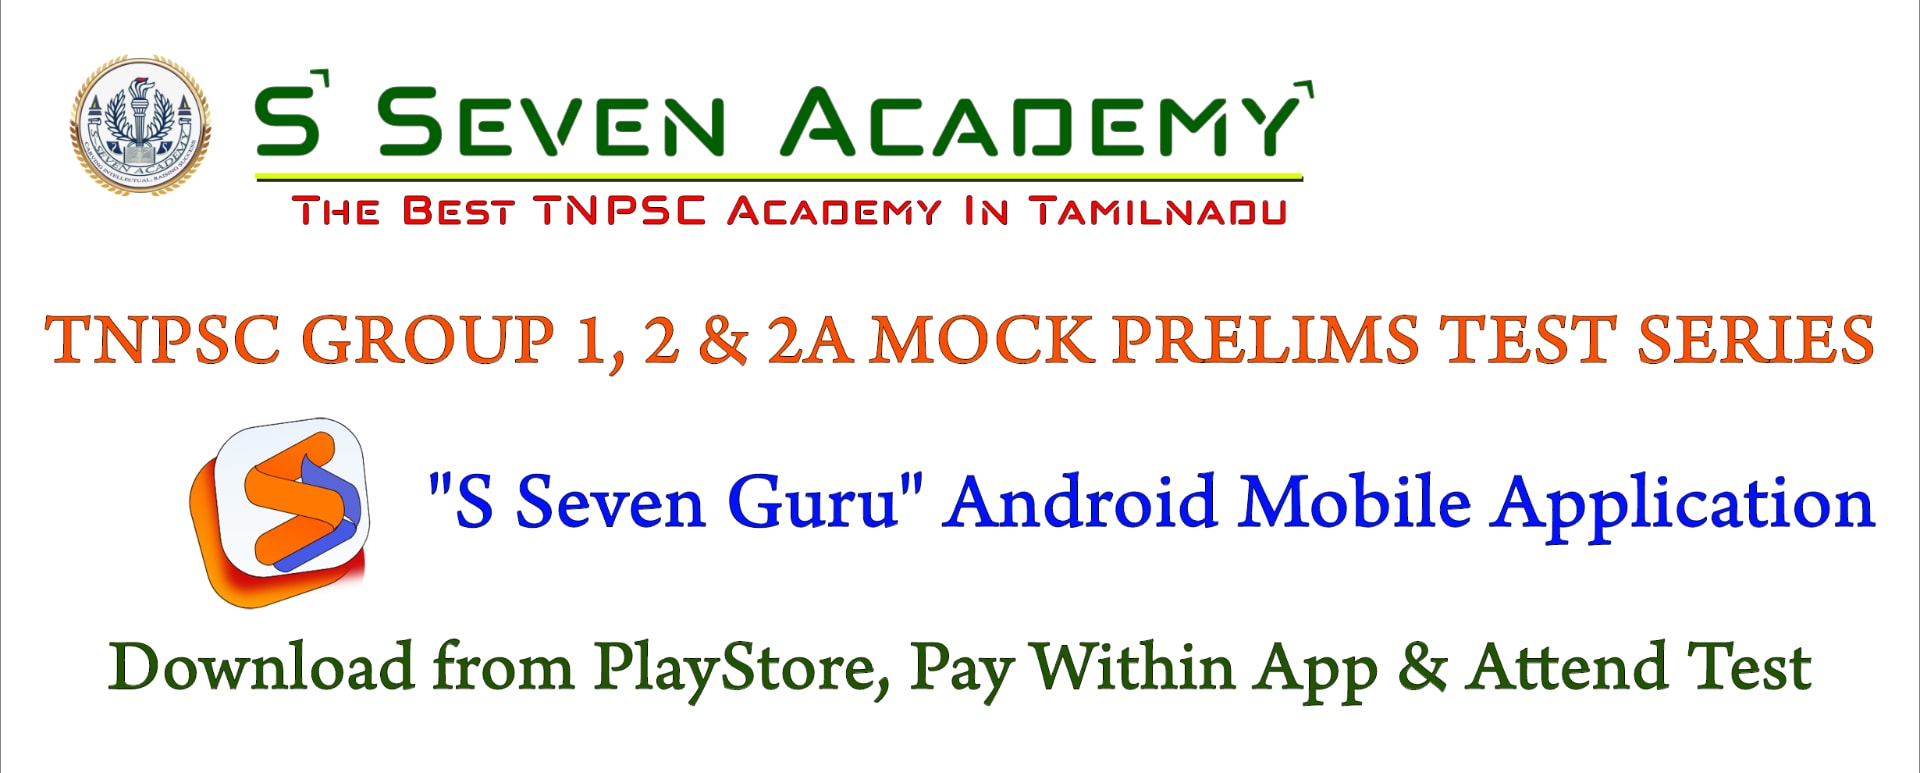 TNPSC Group 2 Mock Test 2 in Tamil, TNPSC Group 2 Mock Test 2 in English, Tnpsc Free Online Test, TNPSC GROUP 2 ONLINE TEST, Tnpsc Online Test for Tnpsc group 2, 4, VAO and all competitive exams, TNPSC Free Online Mock Test in Tamil, Online test, tnpsc coaching center in salem, tnpsc salem, tnpsc coaching in salem, tnpsc, tnpsc coaching class in salem, tnpsc coaching centre in salem, TNPSC Coaching Institute - SALEM, free coaching centre for tnpsc in salem, TNPSC Coaching Institutes in Salem, TNPSC coaching centre, TNPSC Coaching Centres in Salem, TNPSC Exams,Salem coaching centre, Salem coaching centre Number 1 coaching centre for TNPSC, TET, TRB, RRB, TNEB, POLICE, SI, Agri,  Coaching Classes Providers in Salem, Coaching Institute, TNPSC Coaching Centres in Salem, Coaching classes in Salem, TNPSC Coaching in Salem TNPSC Coaching Institute - SALEM, TNPSC Entrance Coaching Centre in Salem, TNPSC Academy, TNPSC Coaching Centres, TNPSC Classes, TNPSC Exam Preparation in Salem, Tnpsc coaching centre in salem, TNPSC Coaching Institute in India, TNPSC Exams Coaching Institute in Salem, Best TNPSC Coaching Institutes in Salem, Top 5 TNPSC Coaching Institute in Salem, TNPSC Entrance Coaching Centre in Salem, Best TNPSC Academy, tnpsc group exam coaching in salem, tnpsc group exam training in salem, tnpsc coaching classes in salem, tnpsc training center in salem, tnpsc coaching institute in salem, tnpsc training institute in salem, tnpsc training centre in salem, tnpsc group 2 coaching in salem, tnpsc group 4 coaching classes in salem, tnpsc vao coaching classes in salem, tnspc group 2 coaching classes in salem, vao coaching in salem, vao coaching classes in salem, coaching classes in Salem with hostel and get top TNPSC classes, TNPSC stands for Tamil Nadu Public Service Commission, TNPSC Combined Civil Services Examination (Group - I, II, III, IV), TNPSC VAO, TN Public Service Commission, TNPSC Combined Engineering Services, TNPSC Coaching Centres and Exam Notification 201